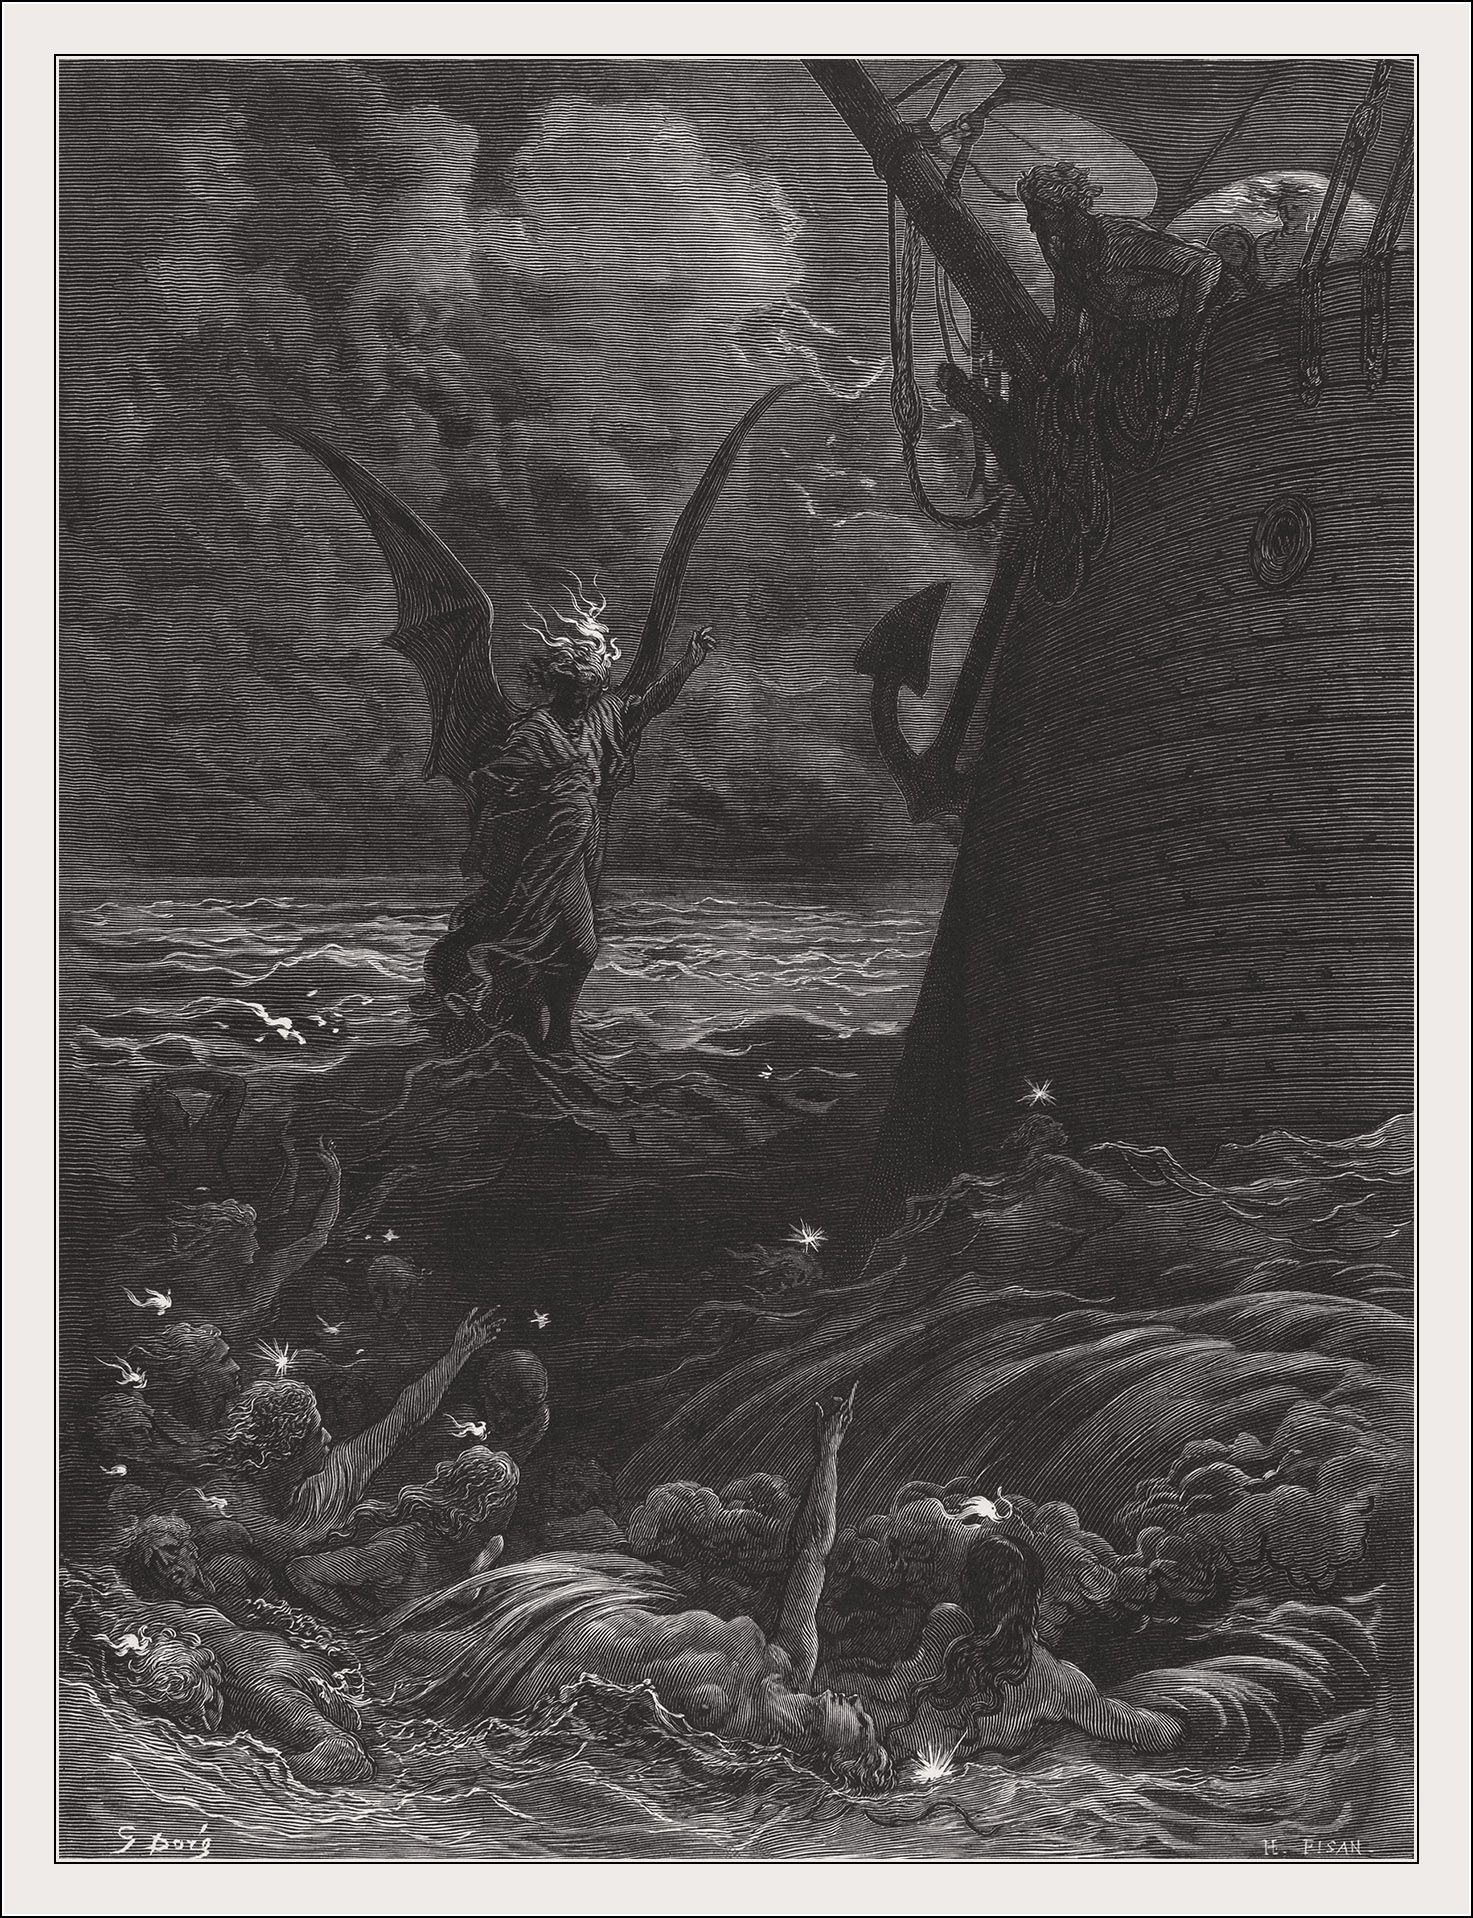 heart of darkness rime of the ancient mariner Heart of darkness, by joseph conrad and the rime of the ancient mariner, by samuel taylor coleridge - marlow and the mariner in heart of darkness and the rime of the ancient mariner are both morally ambiguous characters with many similarities.